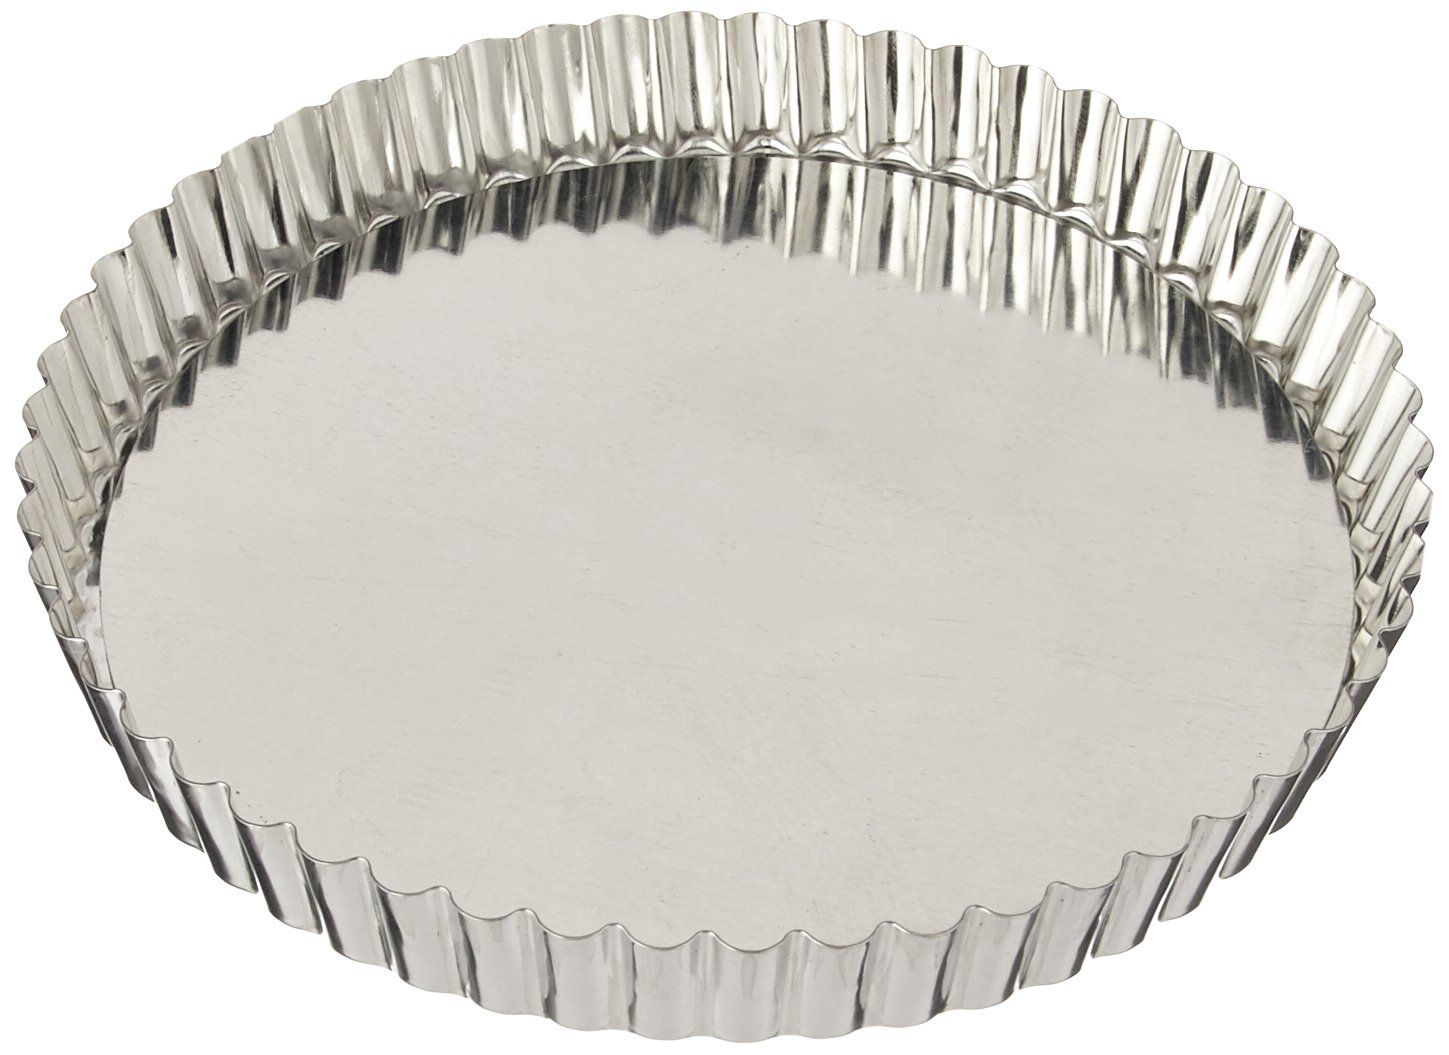 Paderno World Cuisine 7.875 Inch Fluted Non-Stick Tart Mold with Removable Bottom A4770220